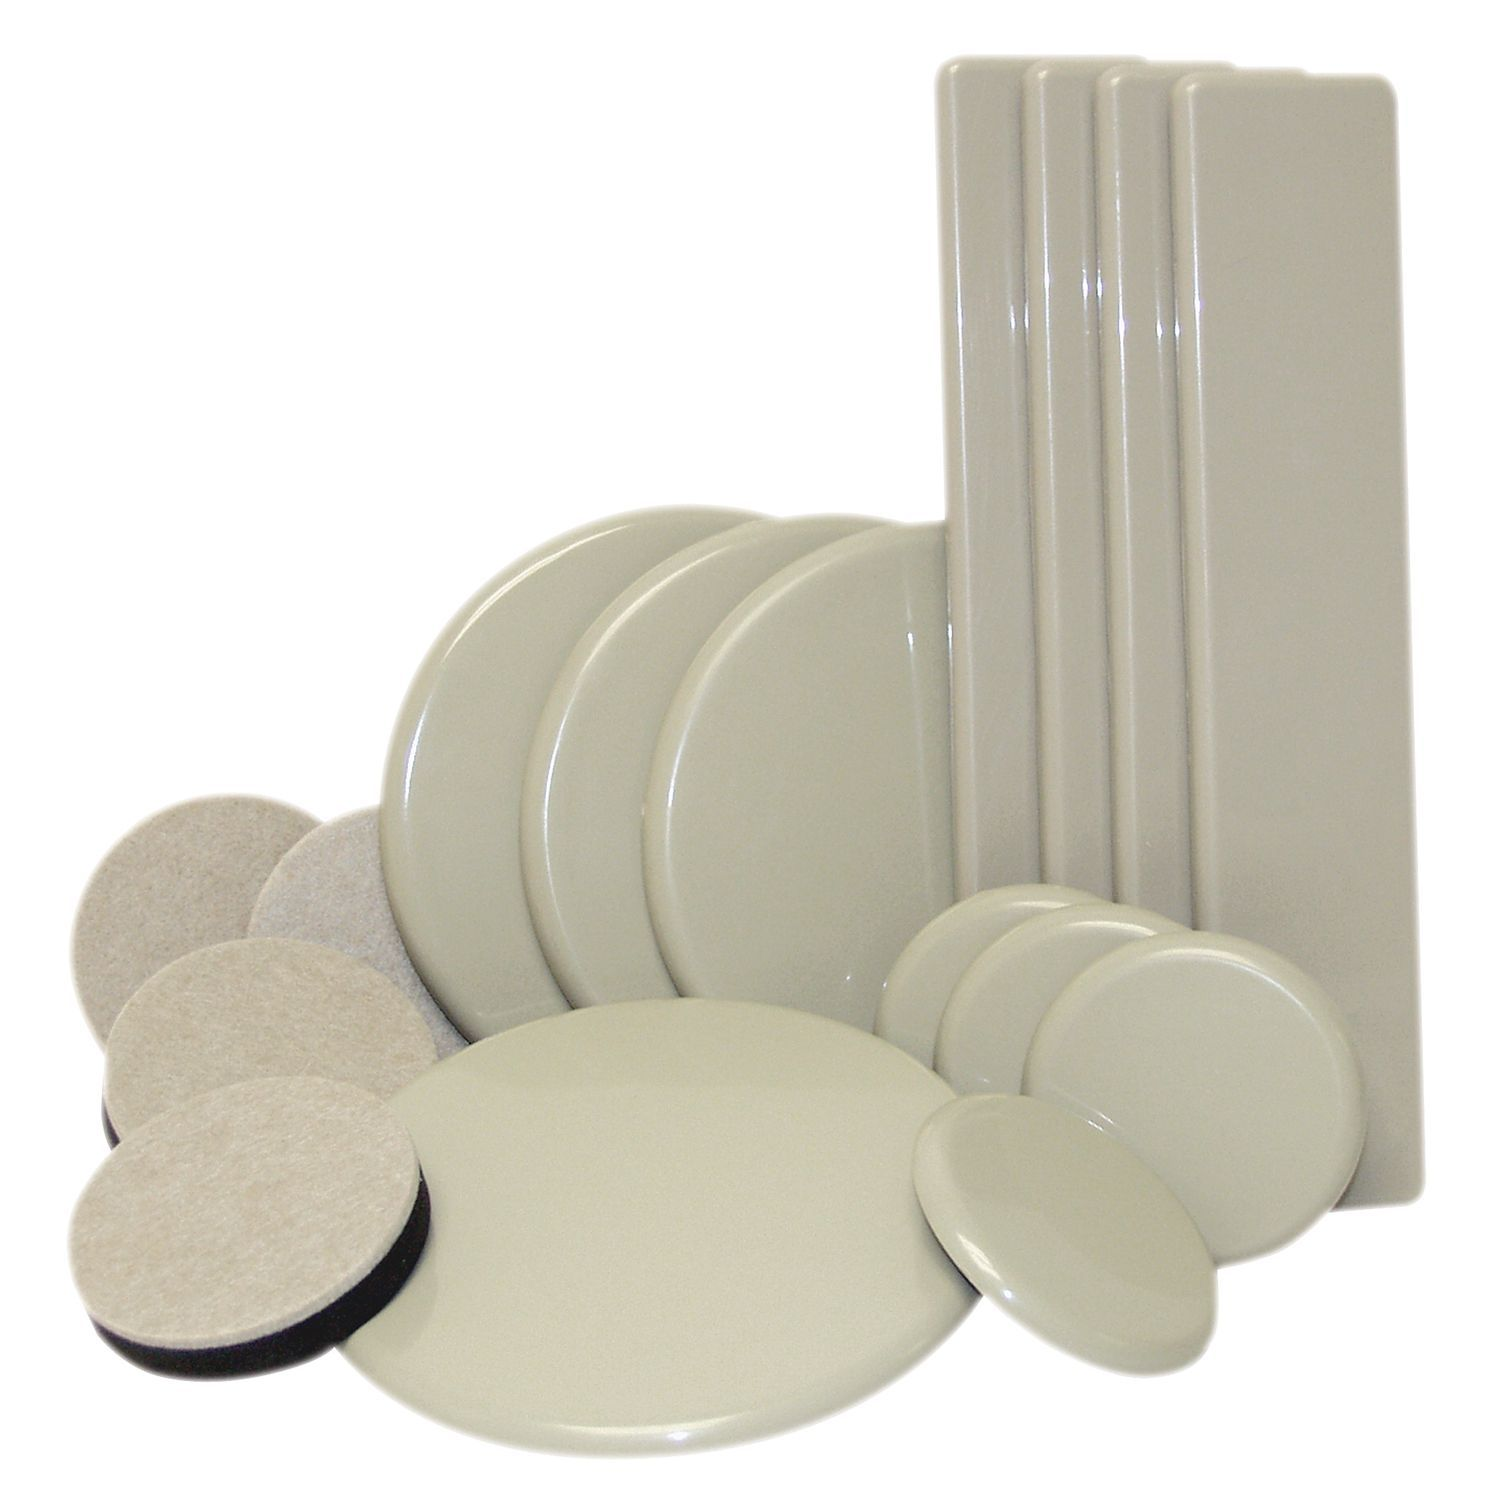 Waxman Consumer Group Oatmeal & Beige Reusable Sliders Moving 16 pc. Kit (Hardware) (Plastic)